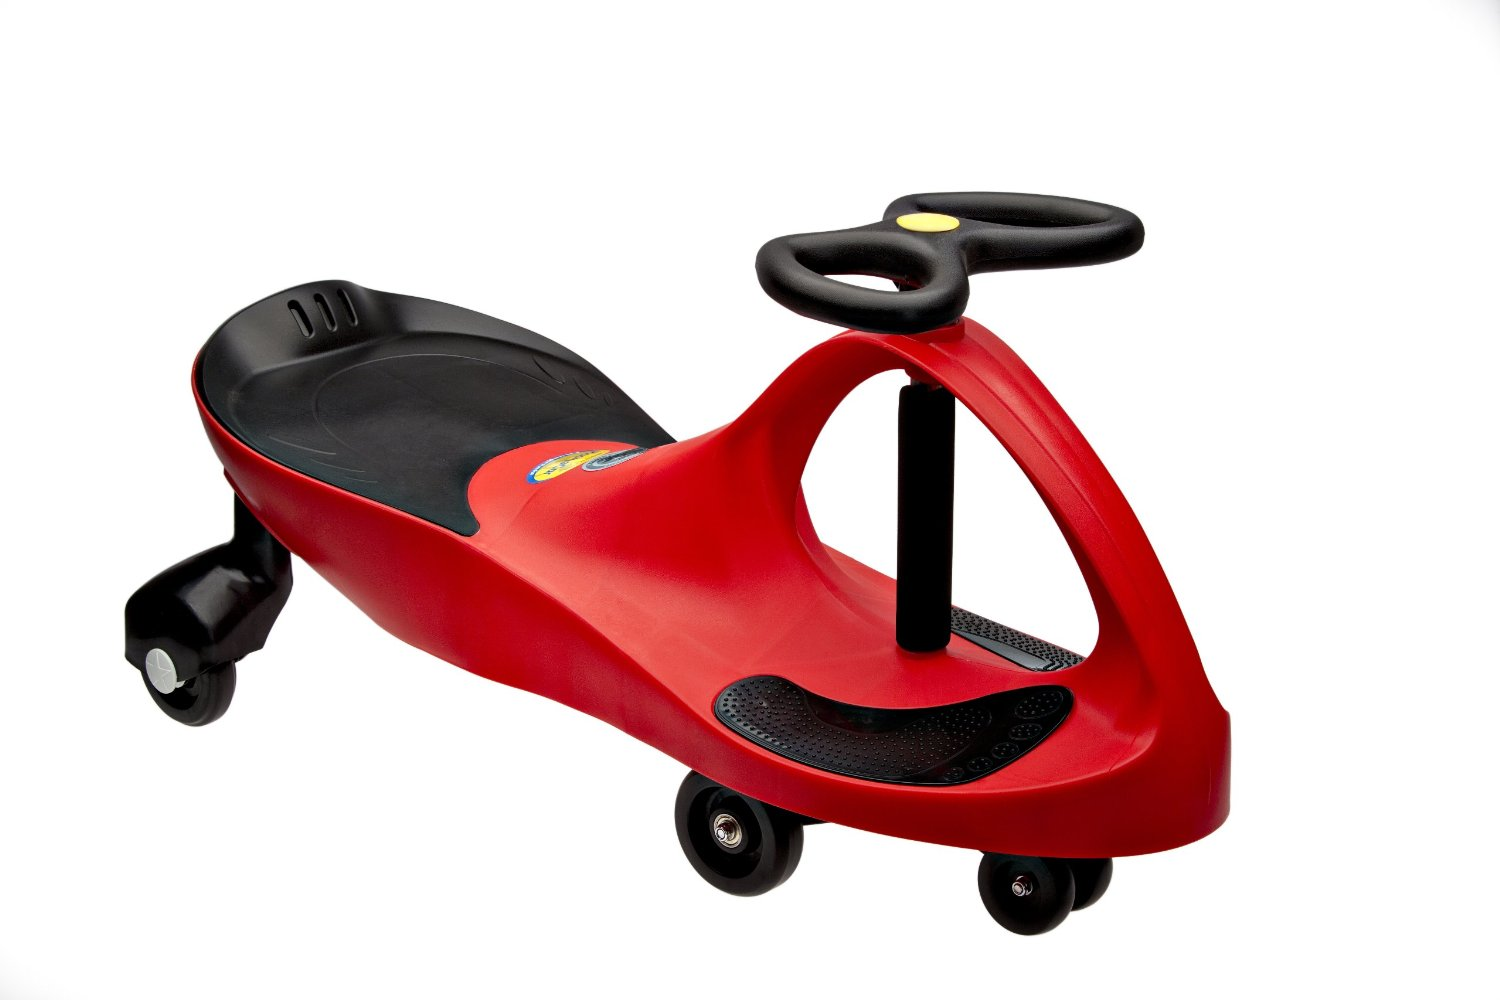 Top 10 Toddler Vehicles Of 2015 Its Baby Time Fisher Price Harley Davidson Ride On Tough Trike Plasma Car Plasmacar